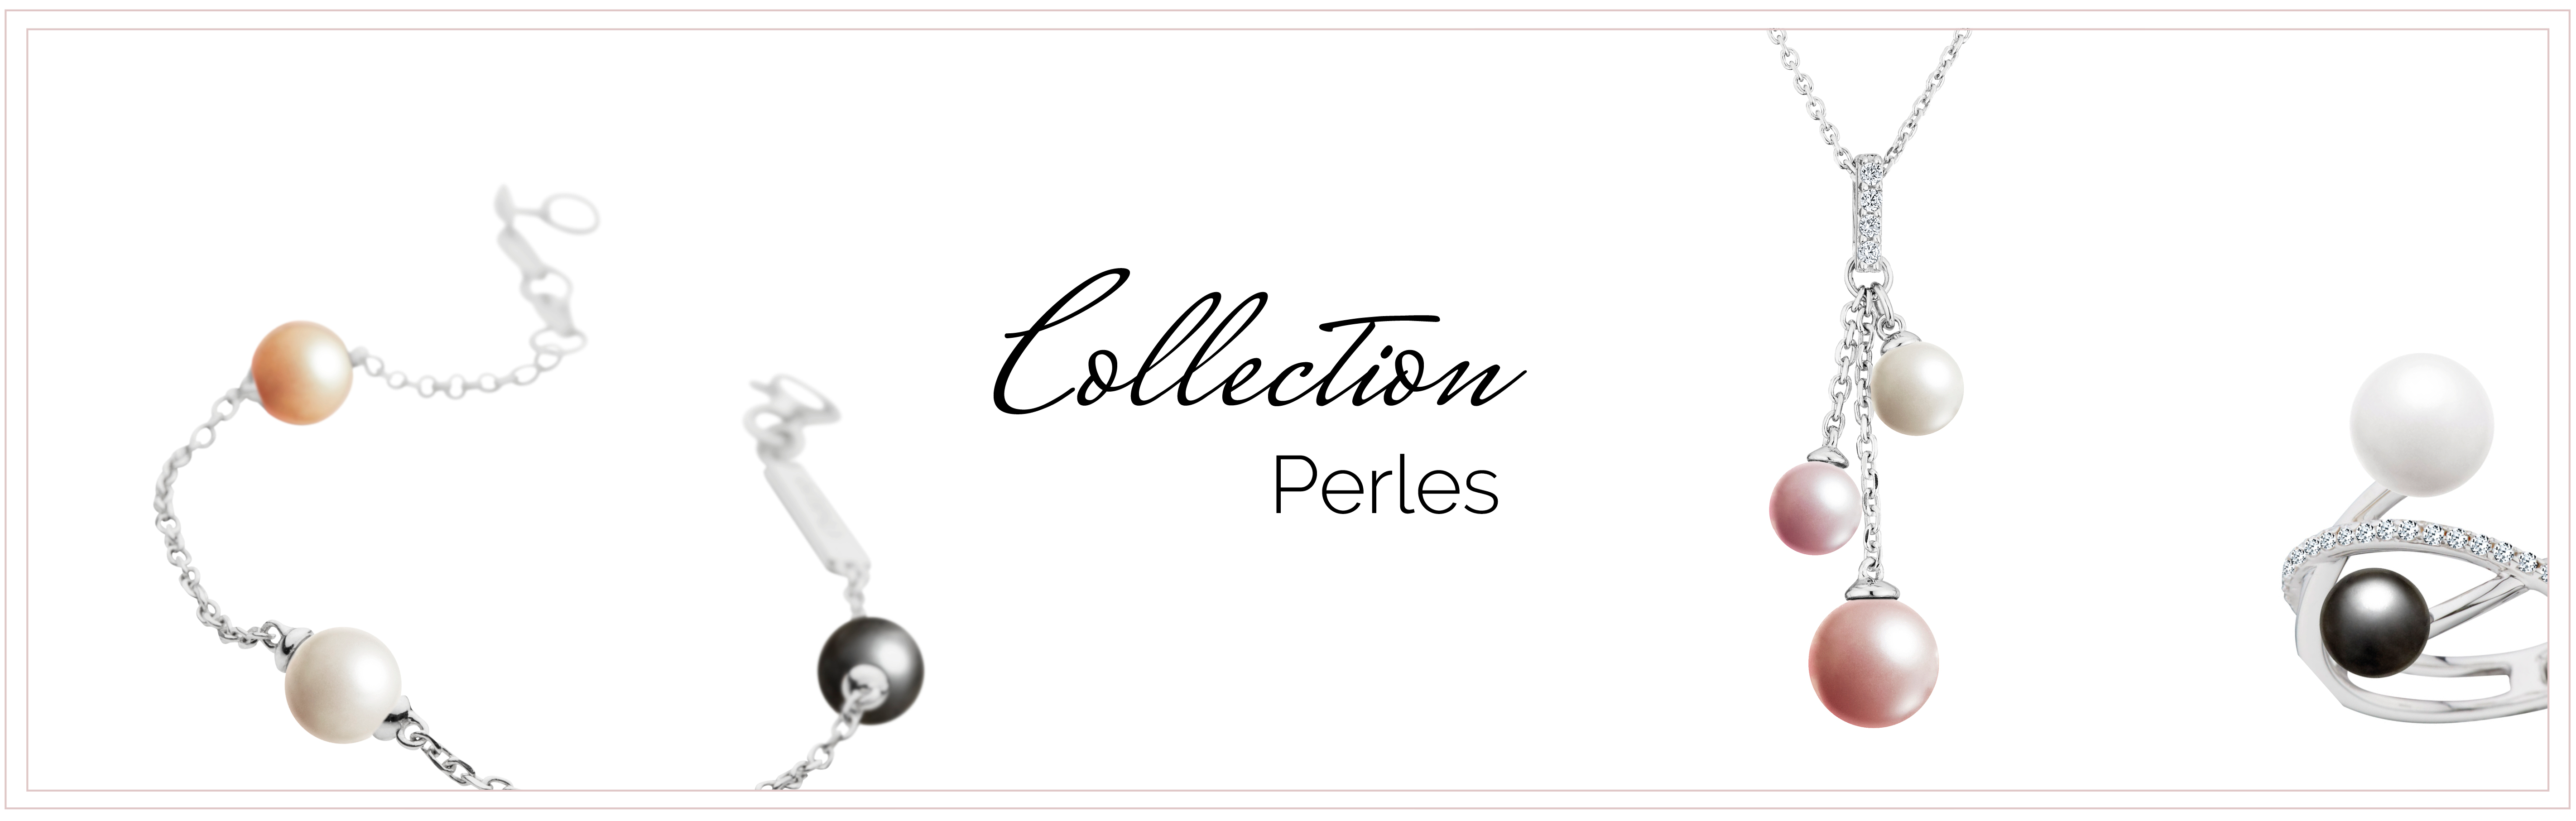 collection perles.png